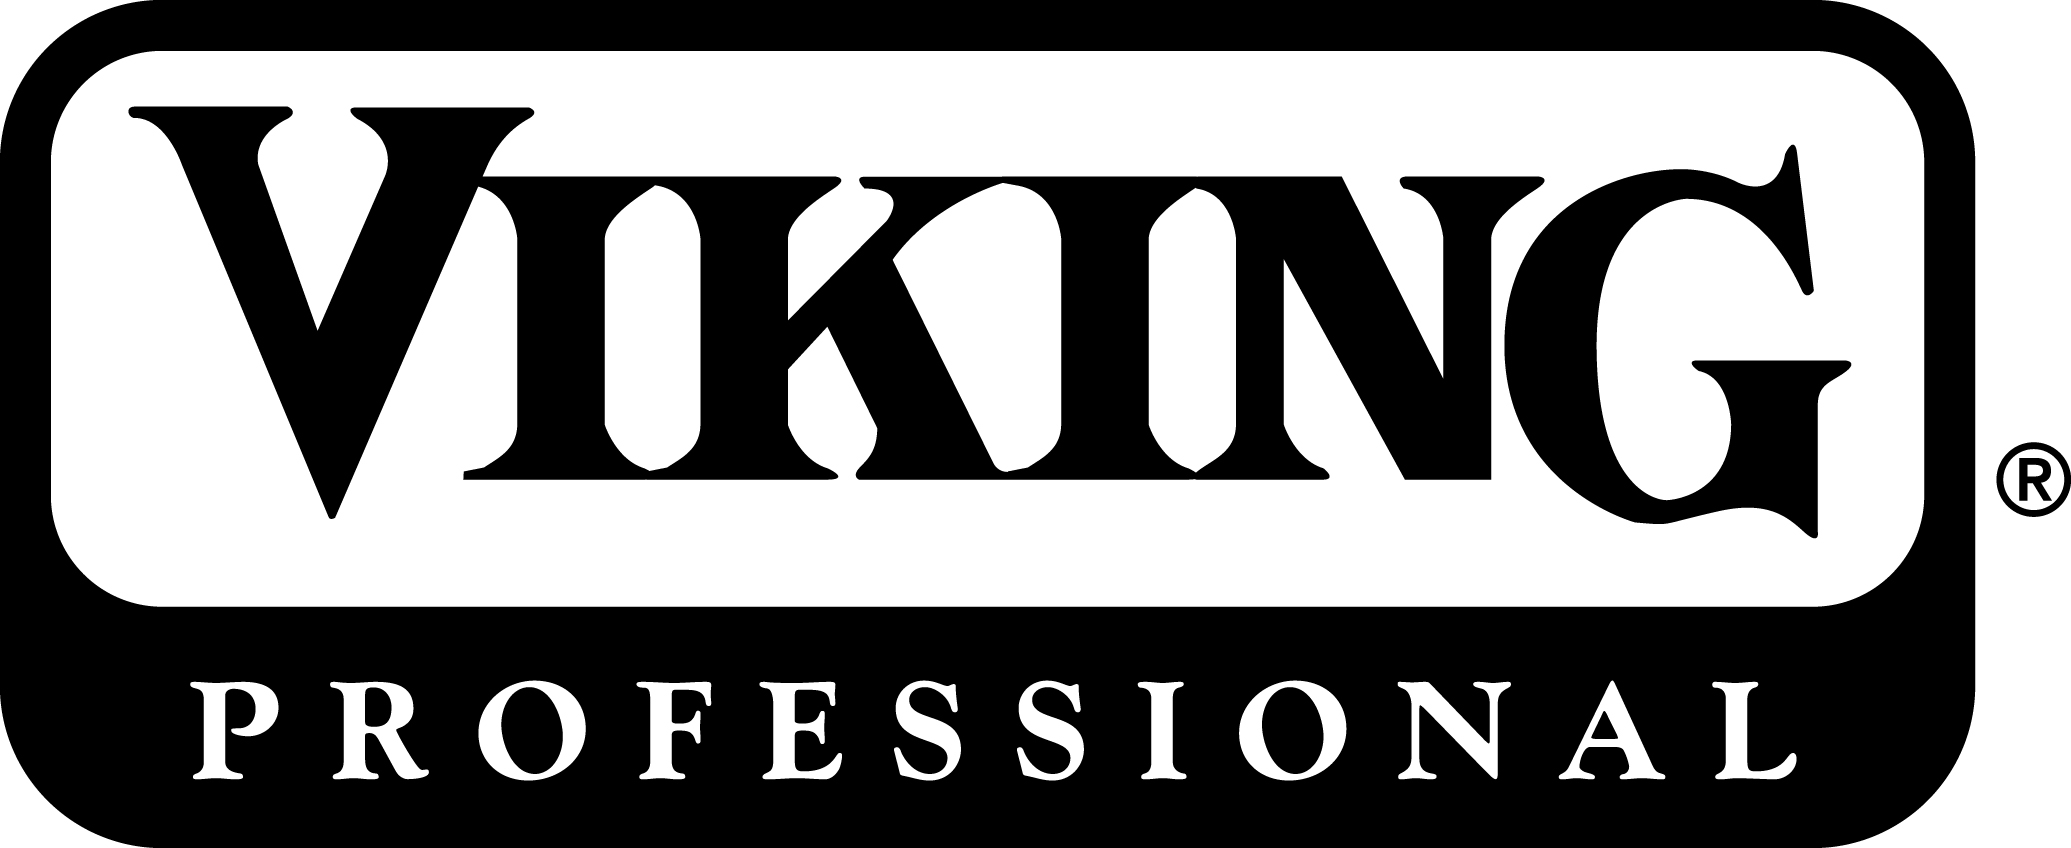 Viking Fridge Service Near Me, Kennmore Refrigerator Repair